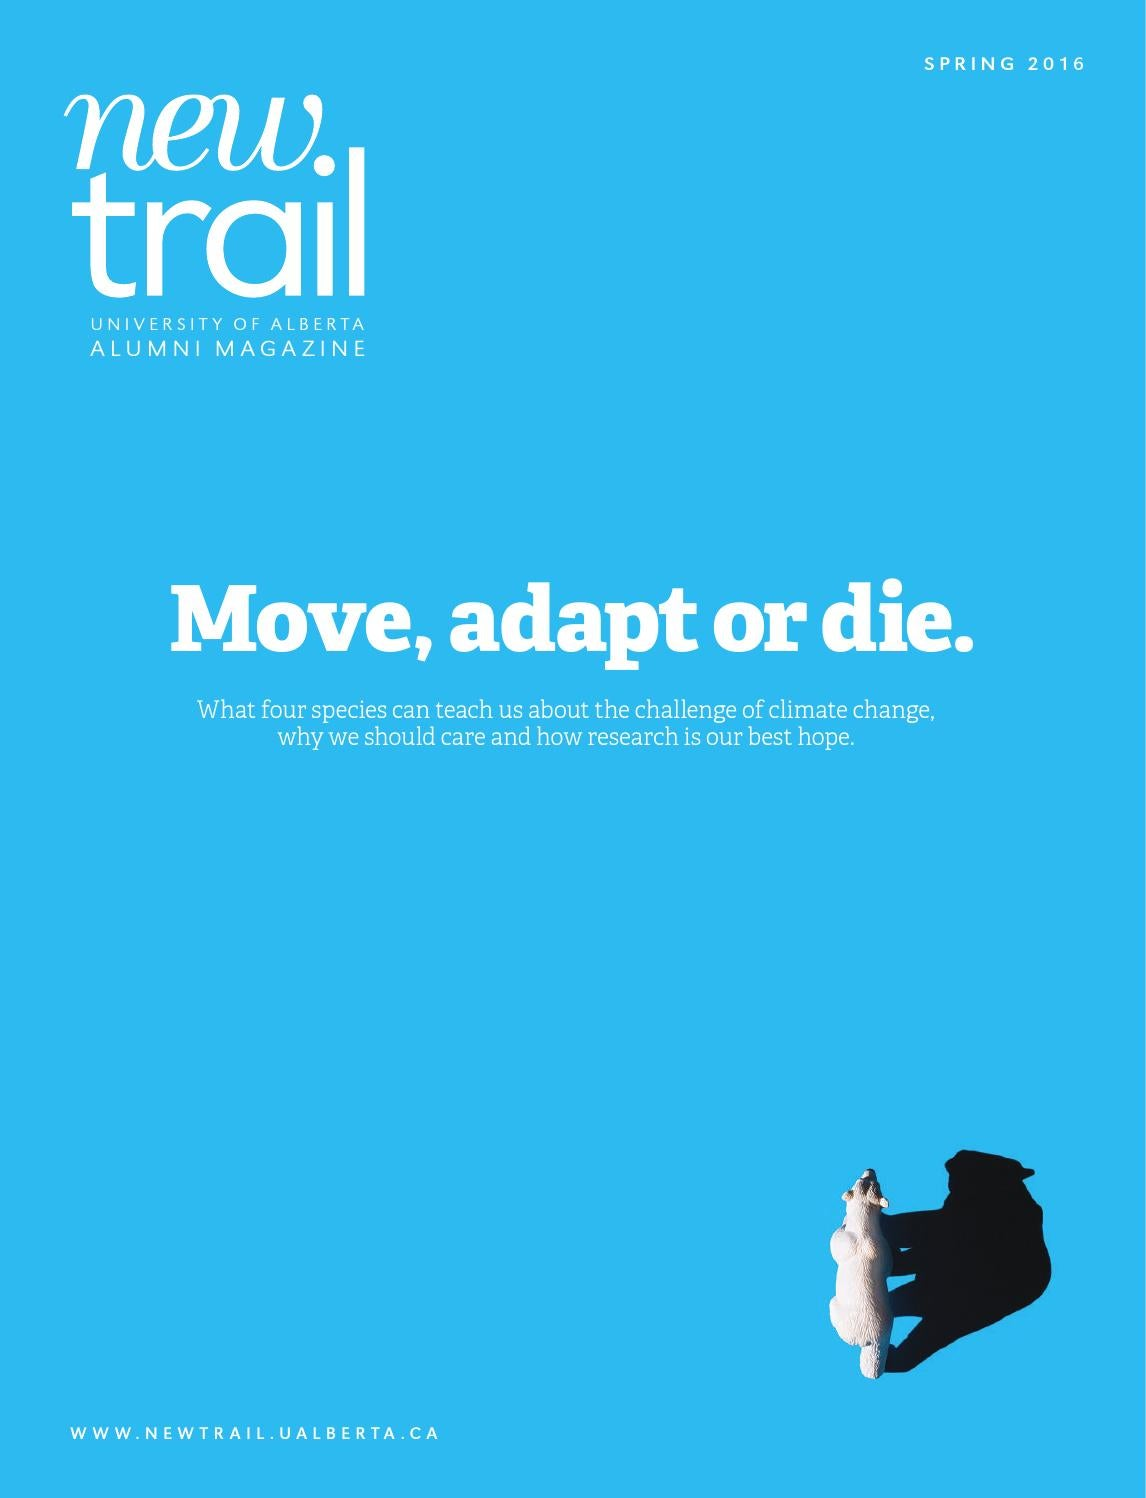 New trail spring 2016 by university of alberta alumni issuu fandeluxe Gallery